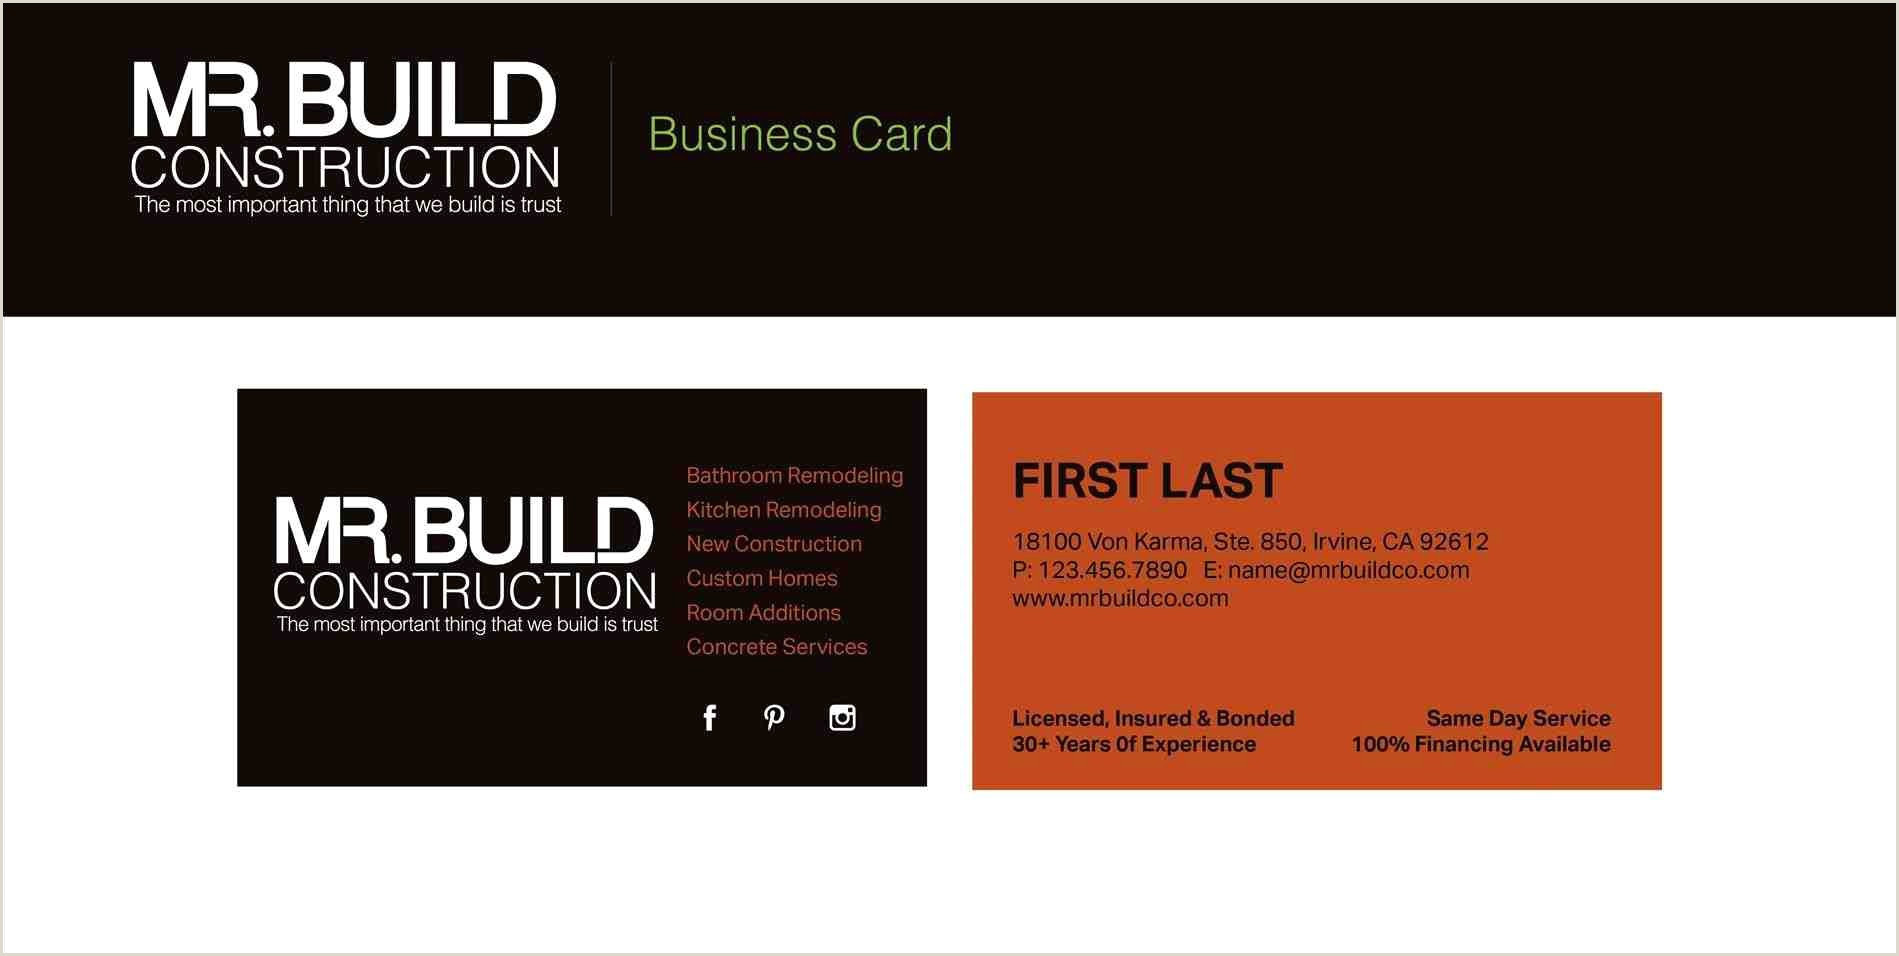 Construction Images For Business Cards 14 Popular Hardwood Flooring Business Card Template